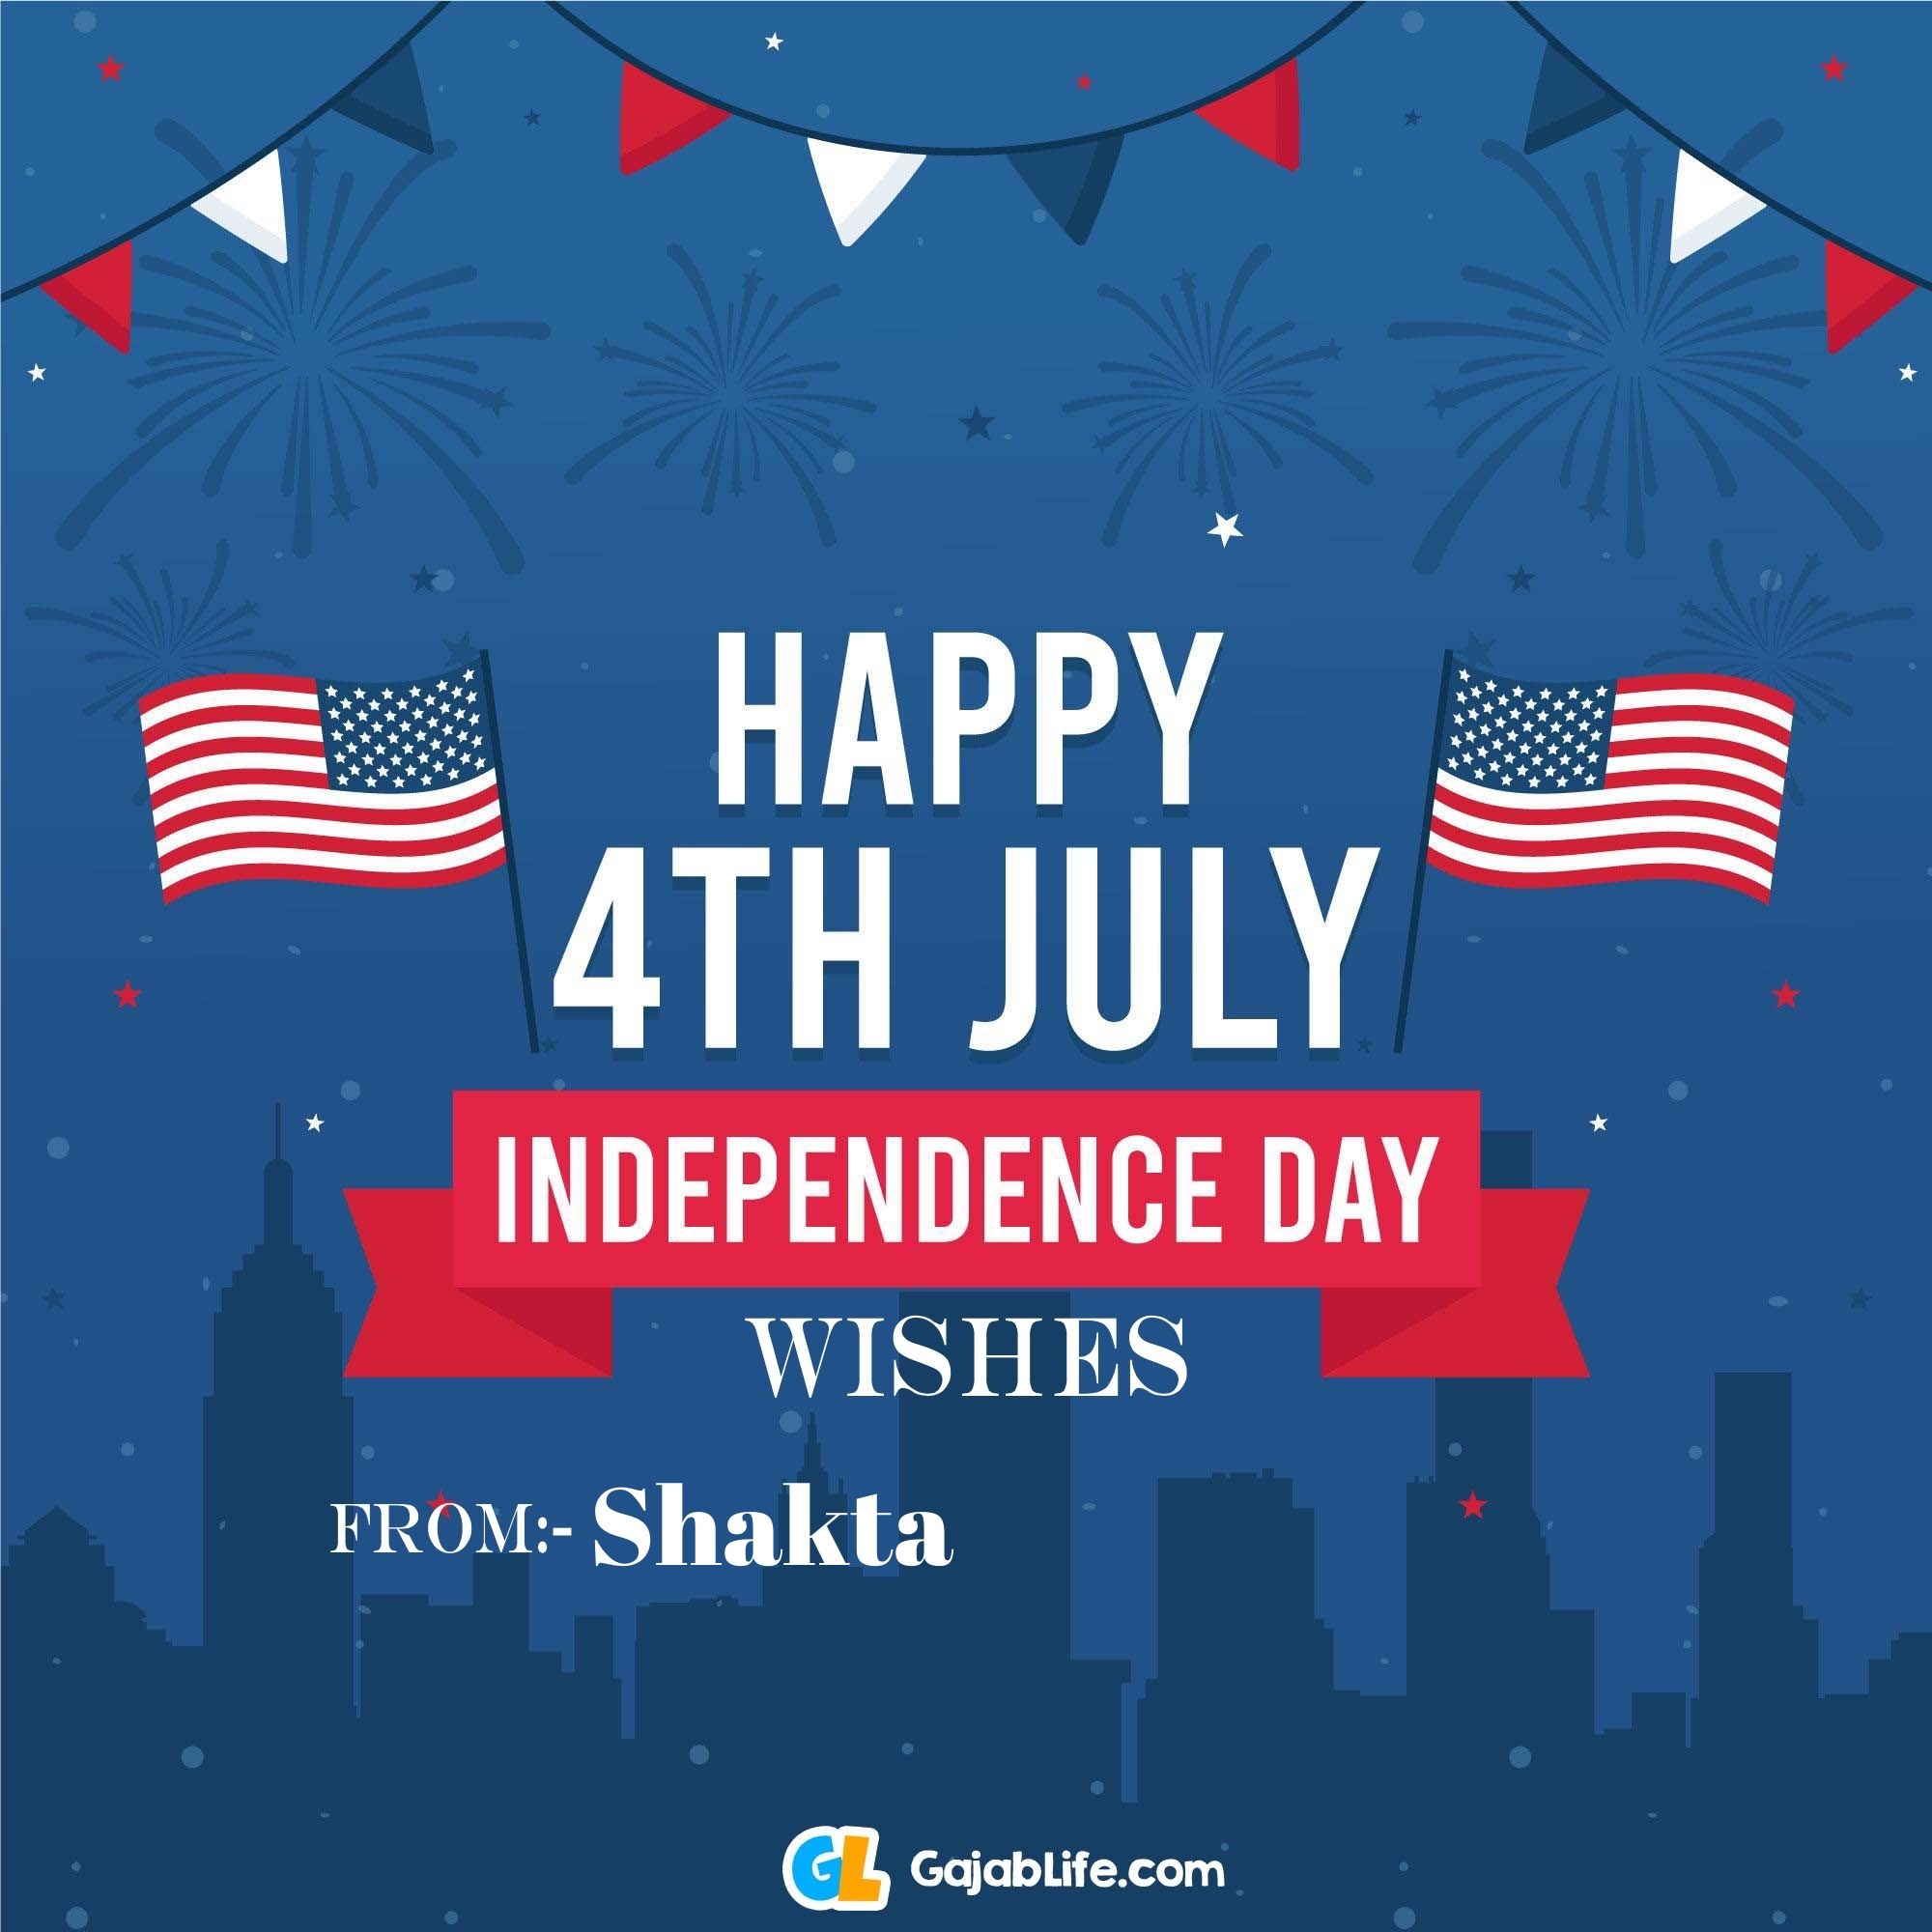 Shakta happy independence day united states of america images